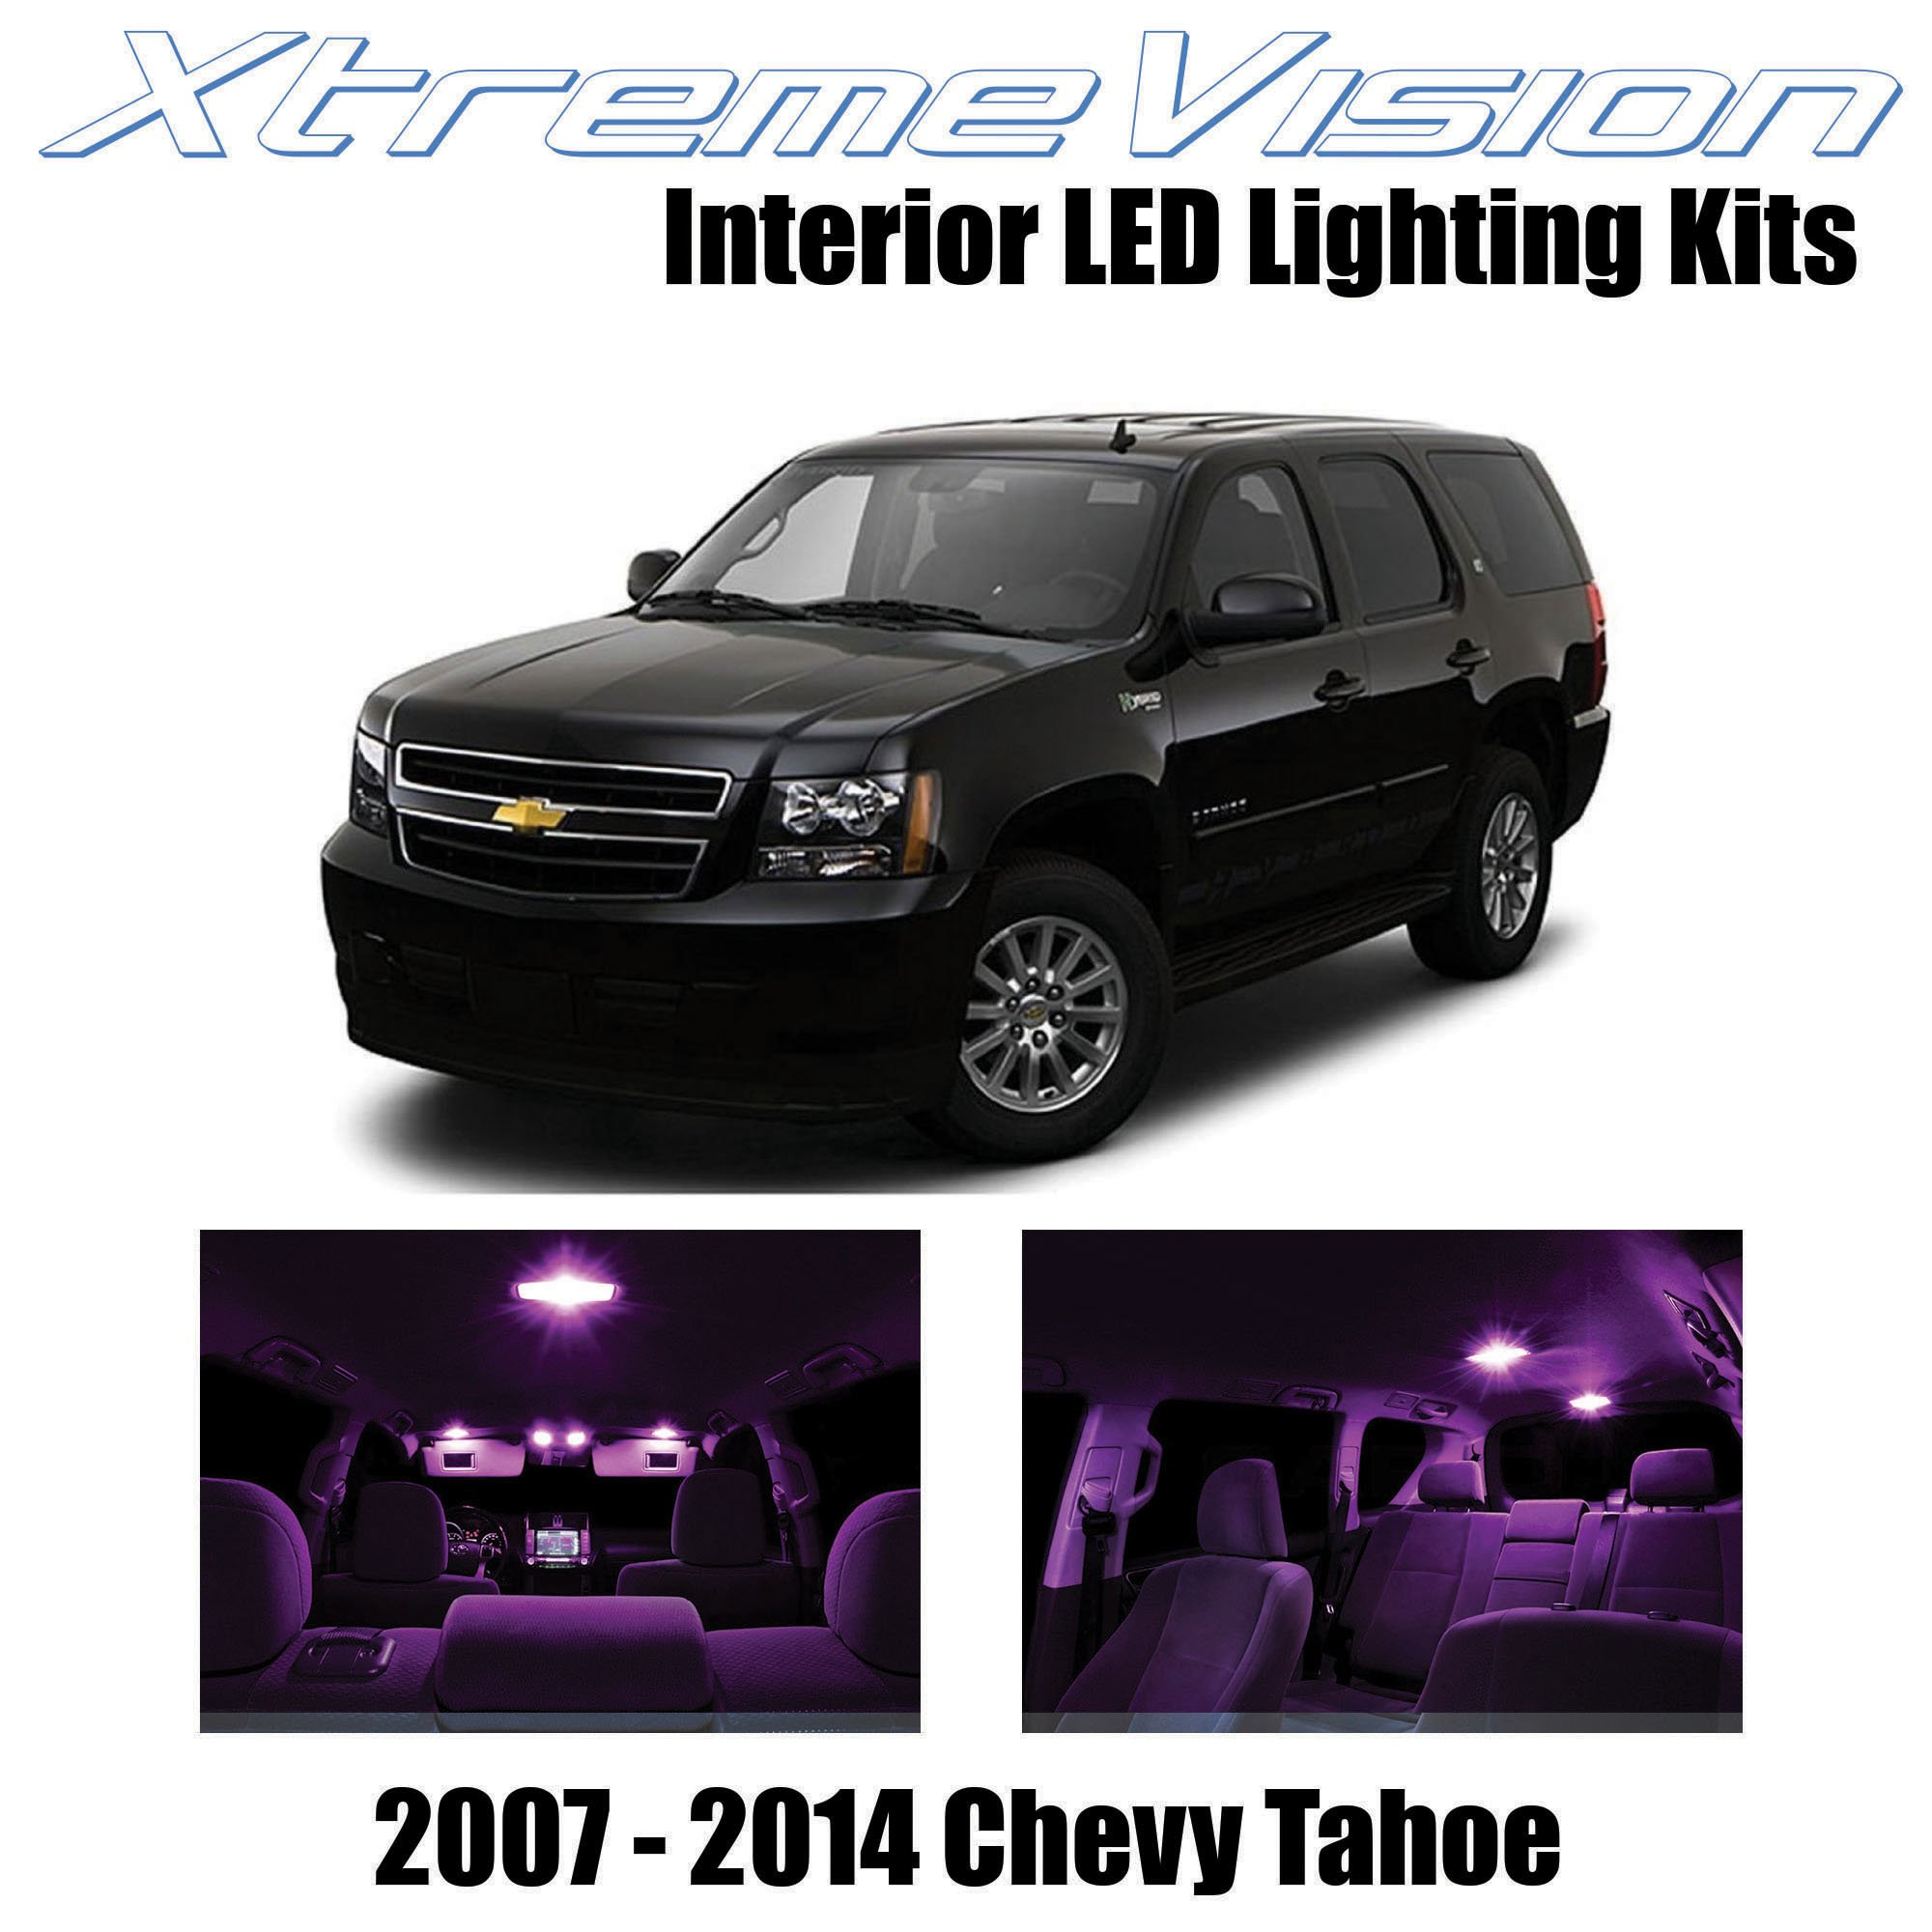 Xtremevision Interior Led For Chevy Tahoe 2007 2014 12 Pieces Pink Interior Led Kit Installation Tool